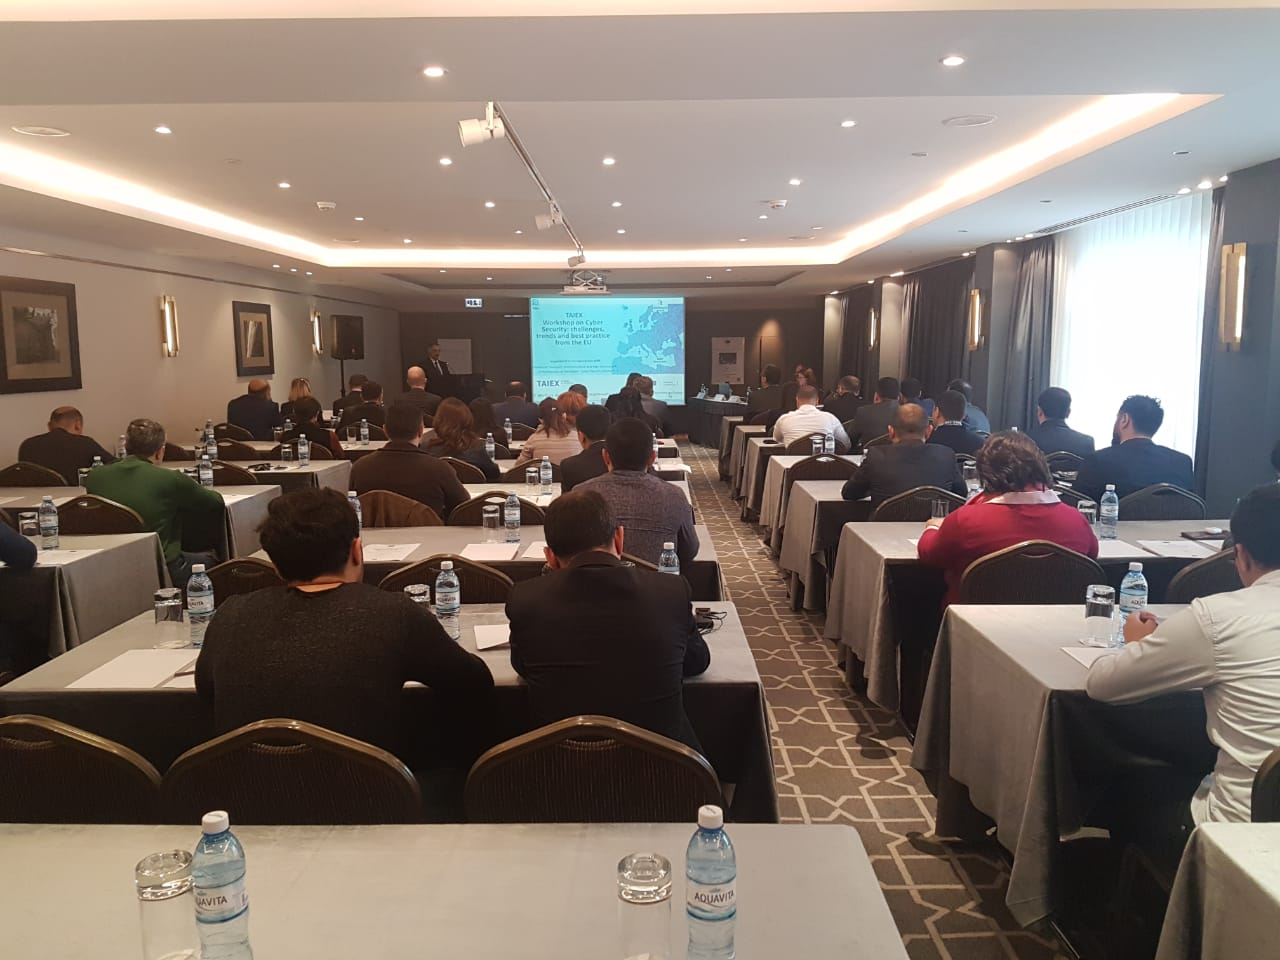 From November 15 to November 16, 2018, in cooperation with the Ministry of Transport and Technologies of Azerbaijan, the European Commission organized a Workshop on Cyber Security: Challenges, Trends and Best Practice From the EU. The event took place in Baku in the context of strengthening relations between the EU and Azerbaijan using a TAIEX...